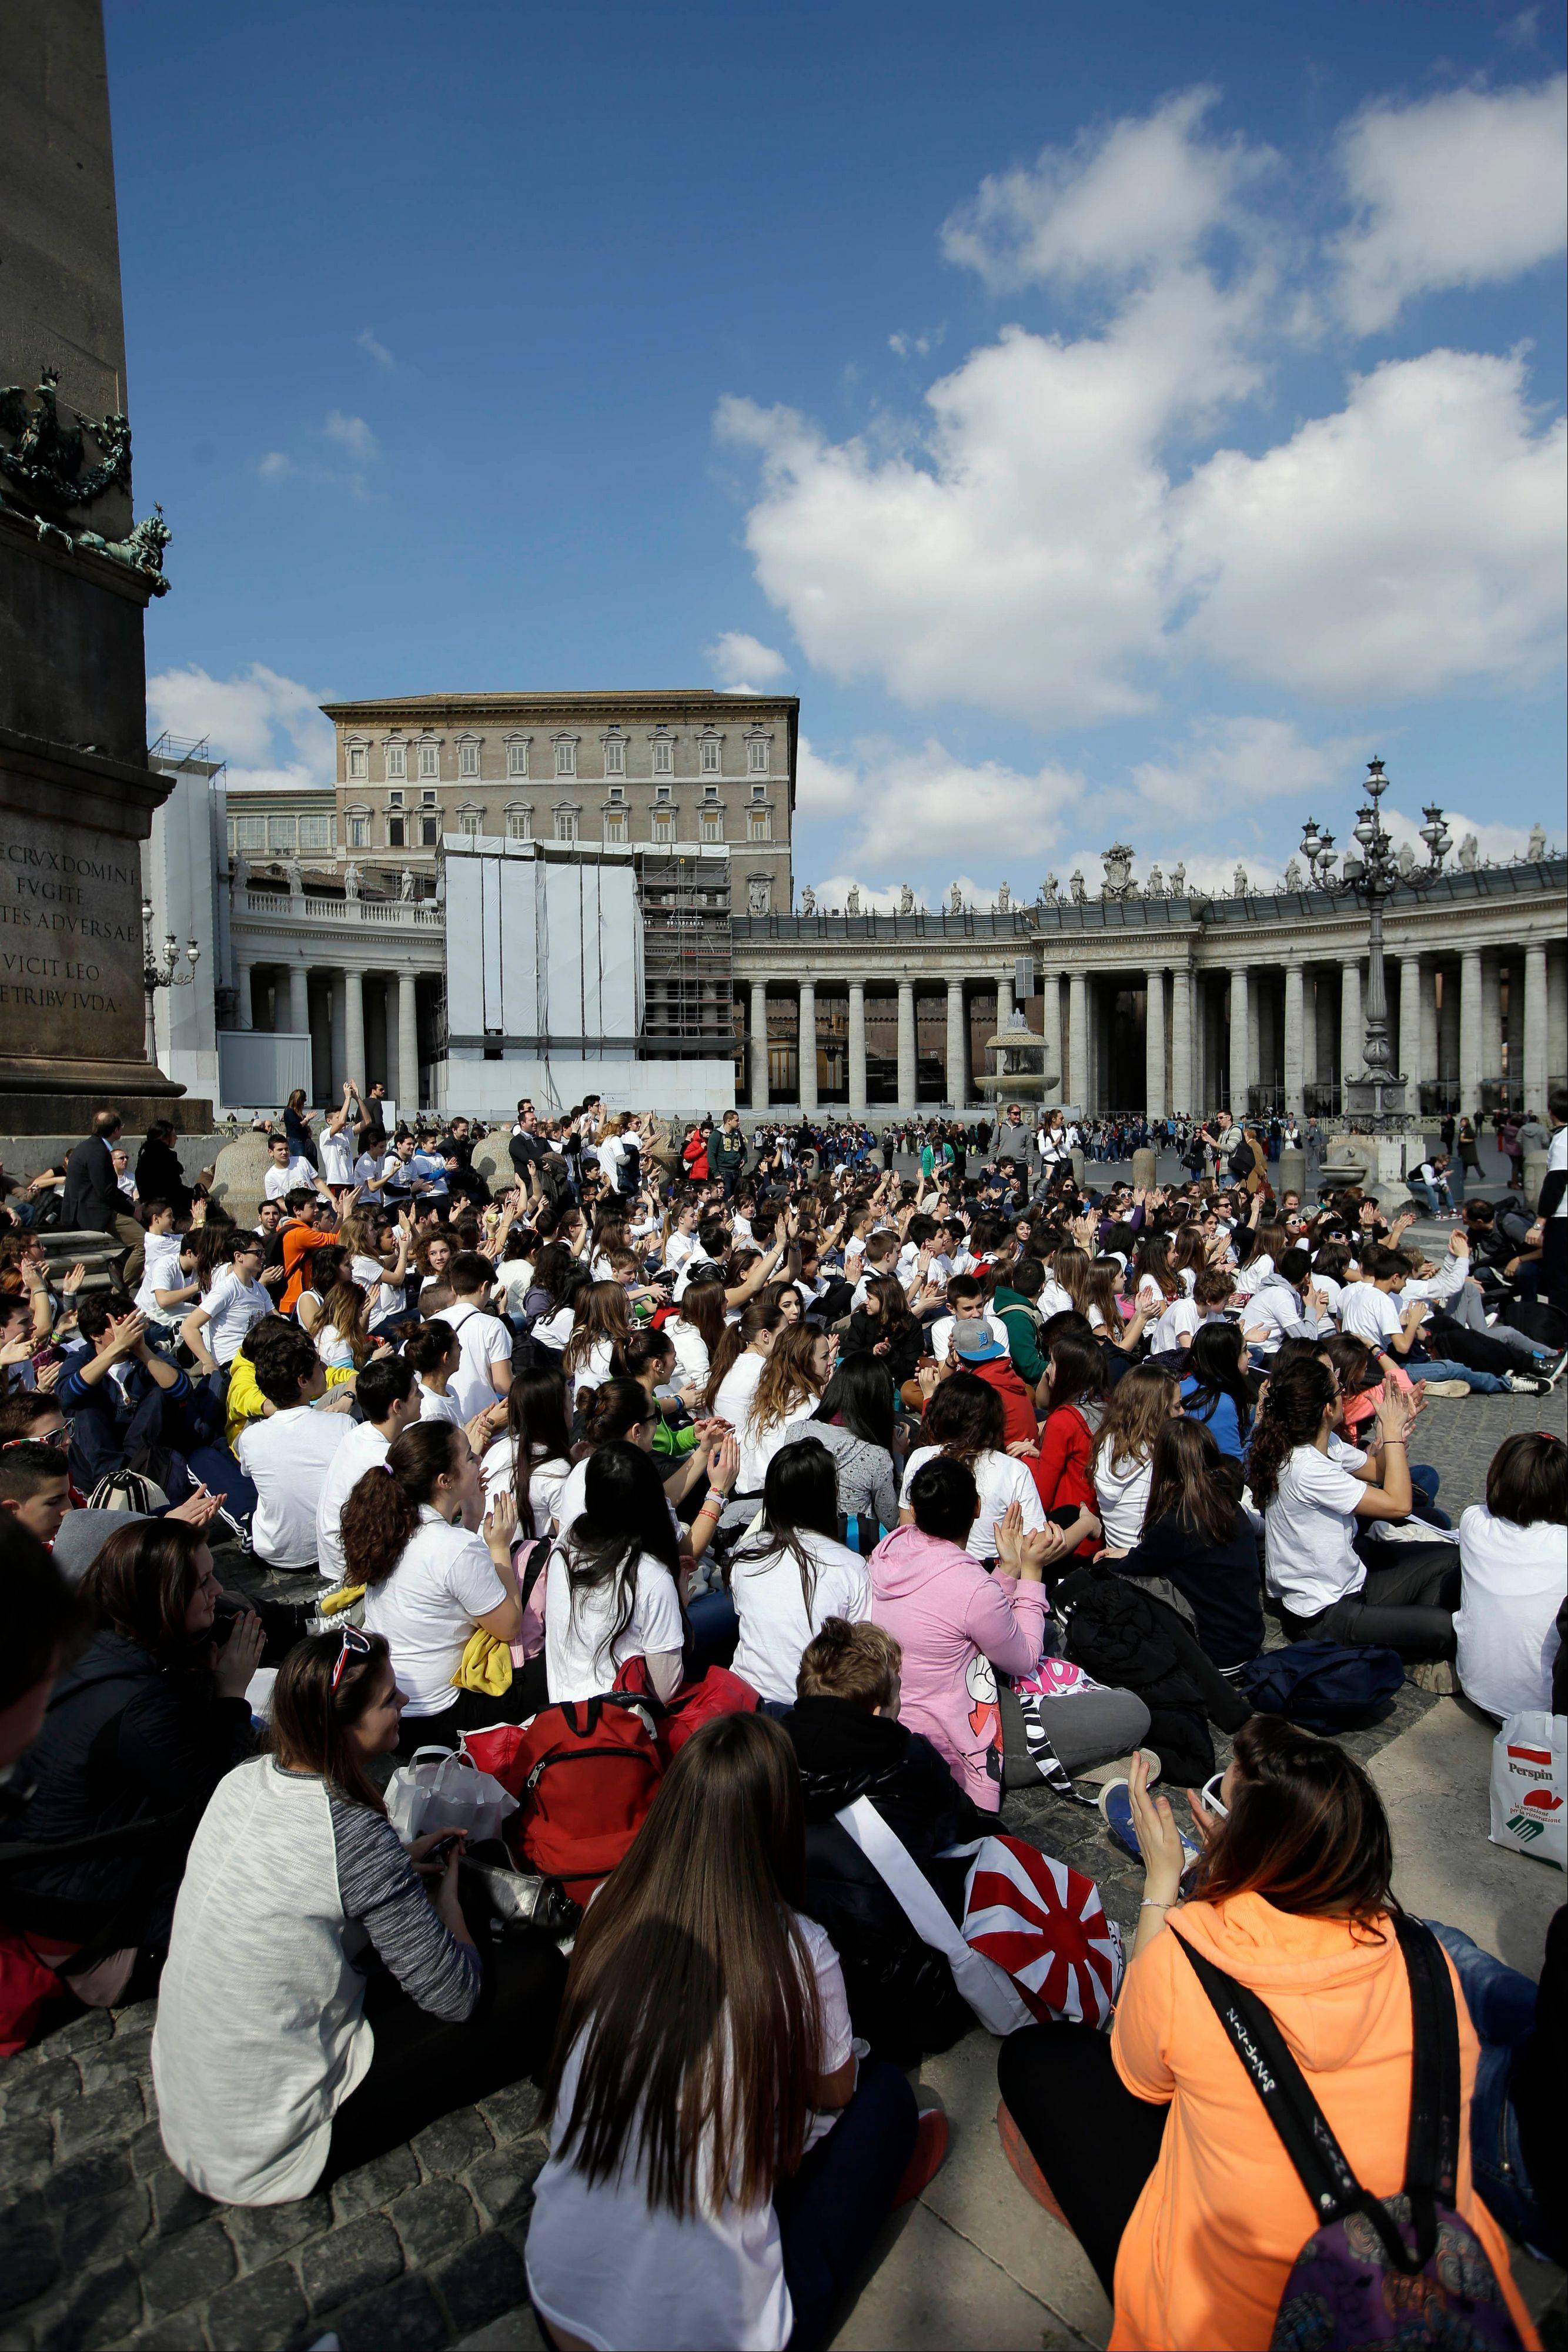 Youths celebrate an Angelus prayer in St. Peter�s Square at the Vatican Sunday. Benedict XVI�s opened what is known as the �sede vacante� or �vacant see,� the transition period between papacies when a few key Vatican officials take charge of running the church.